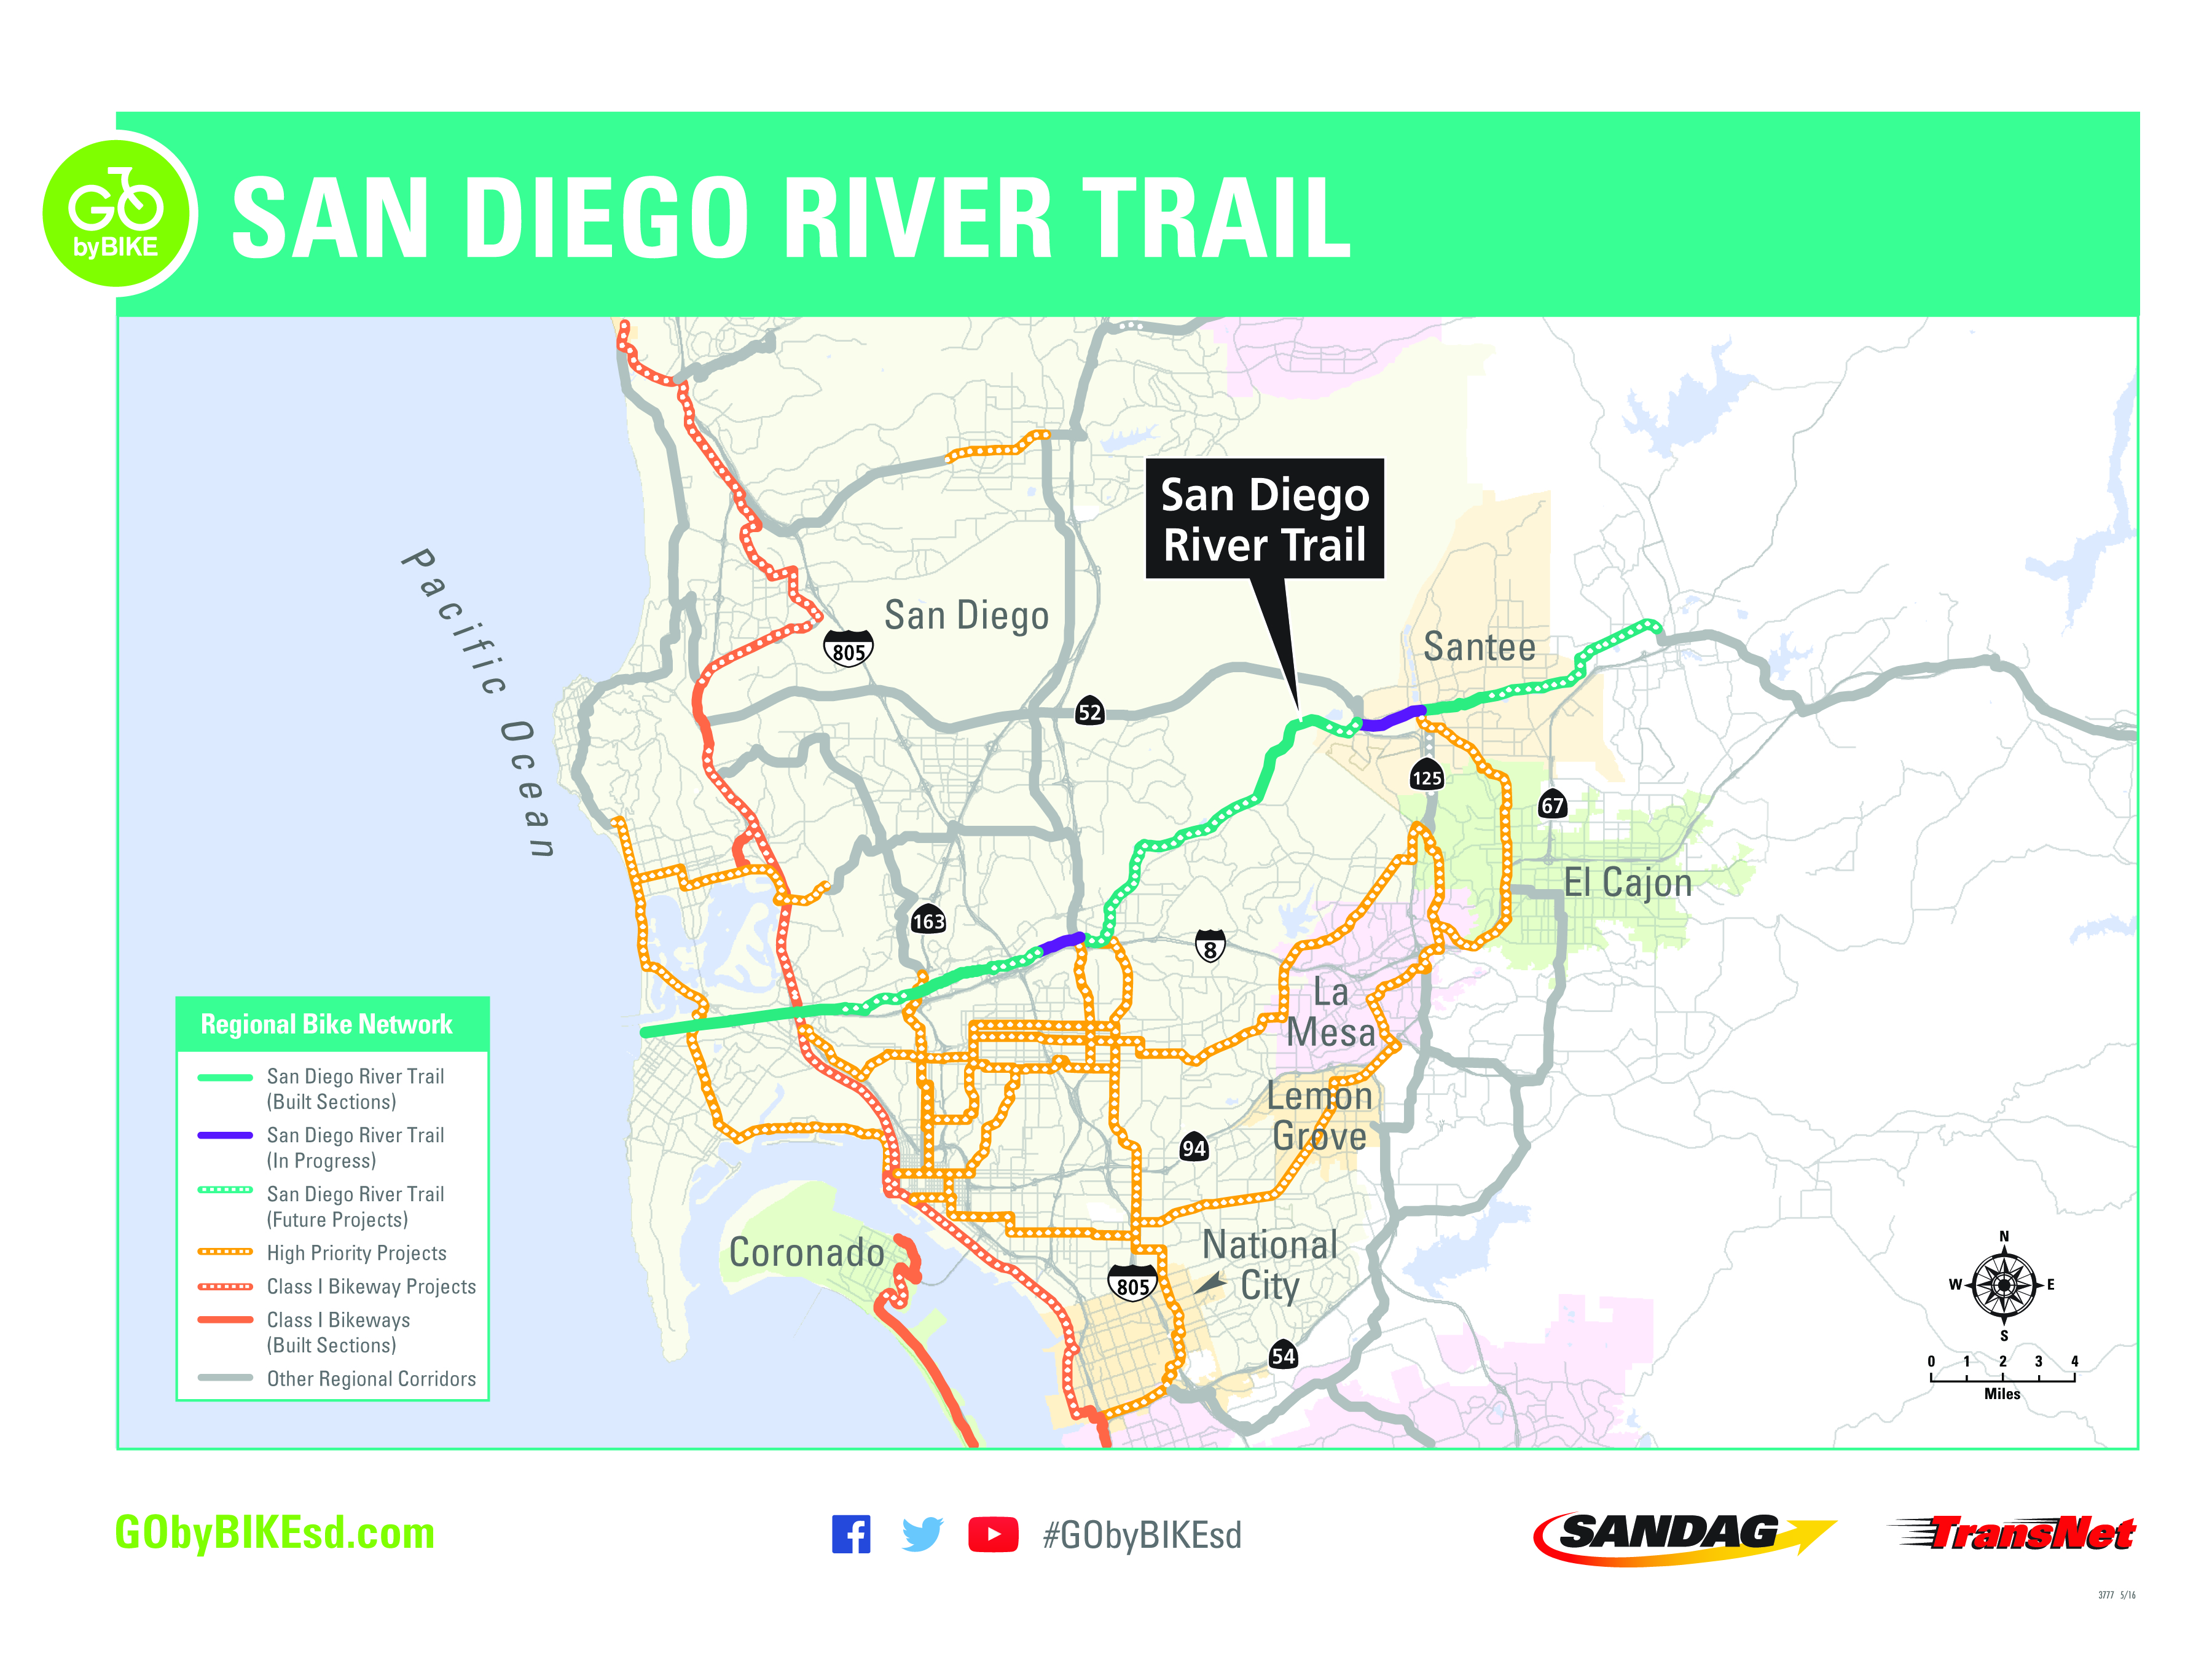 San Diego River Trail